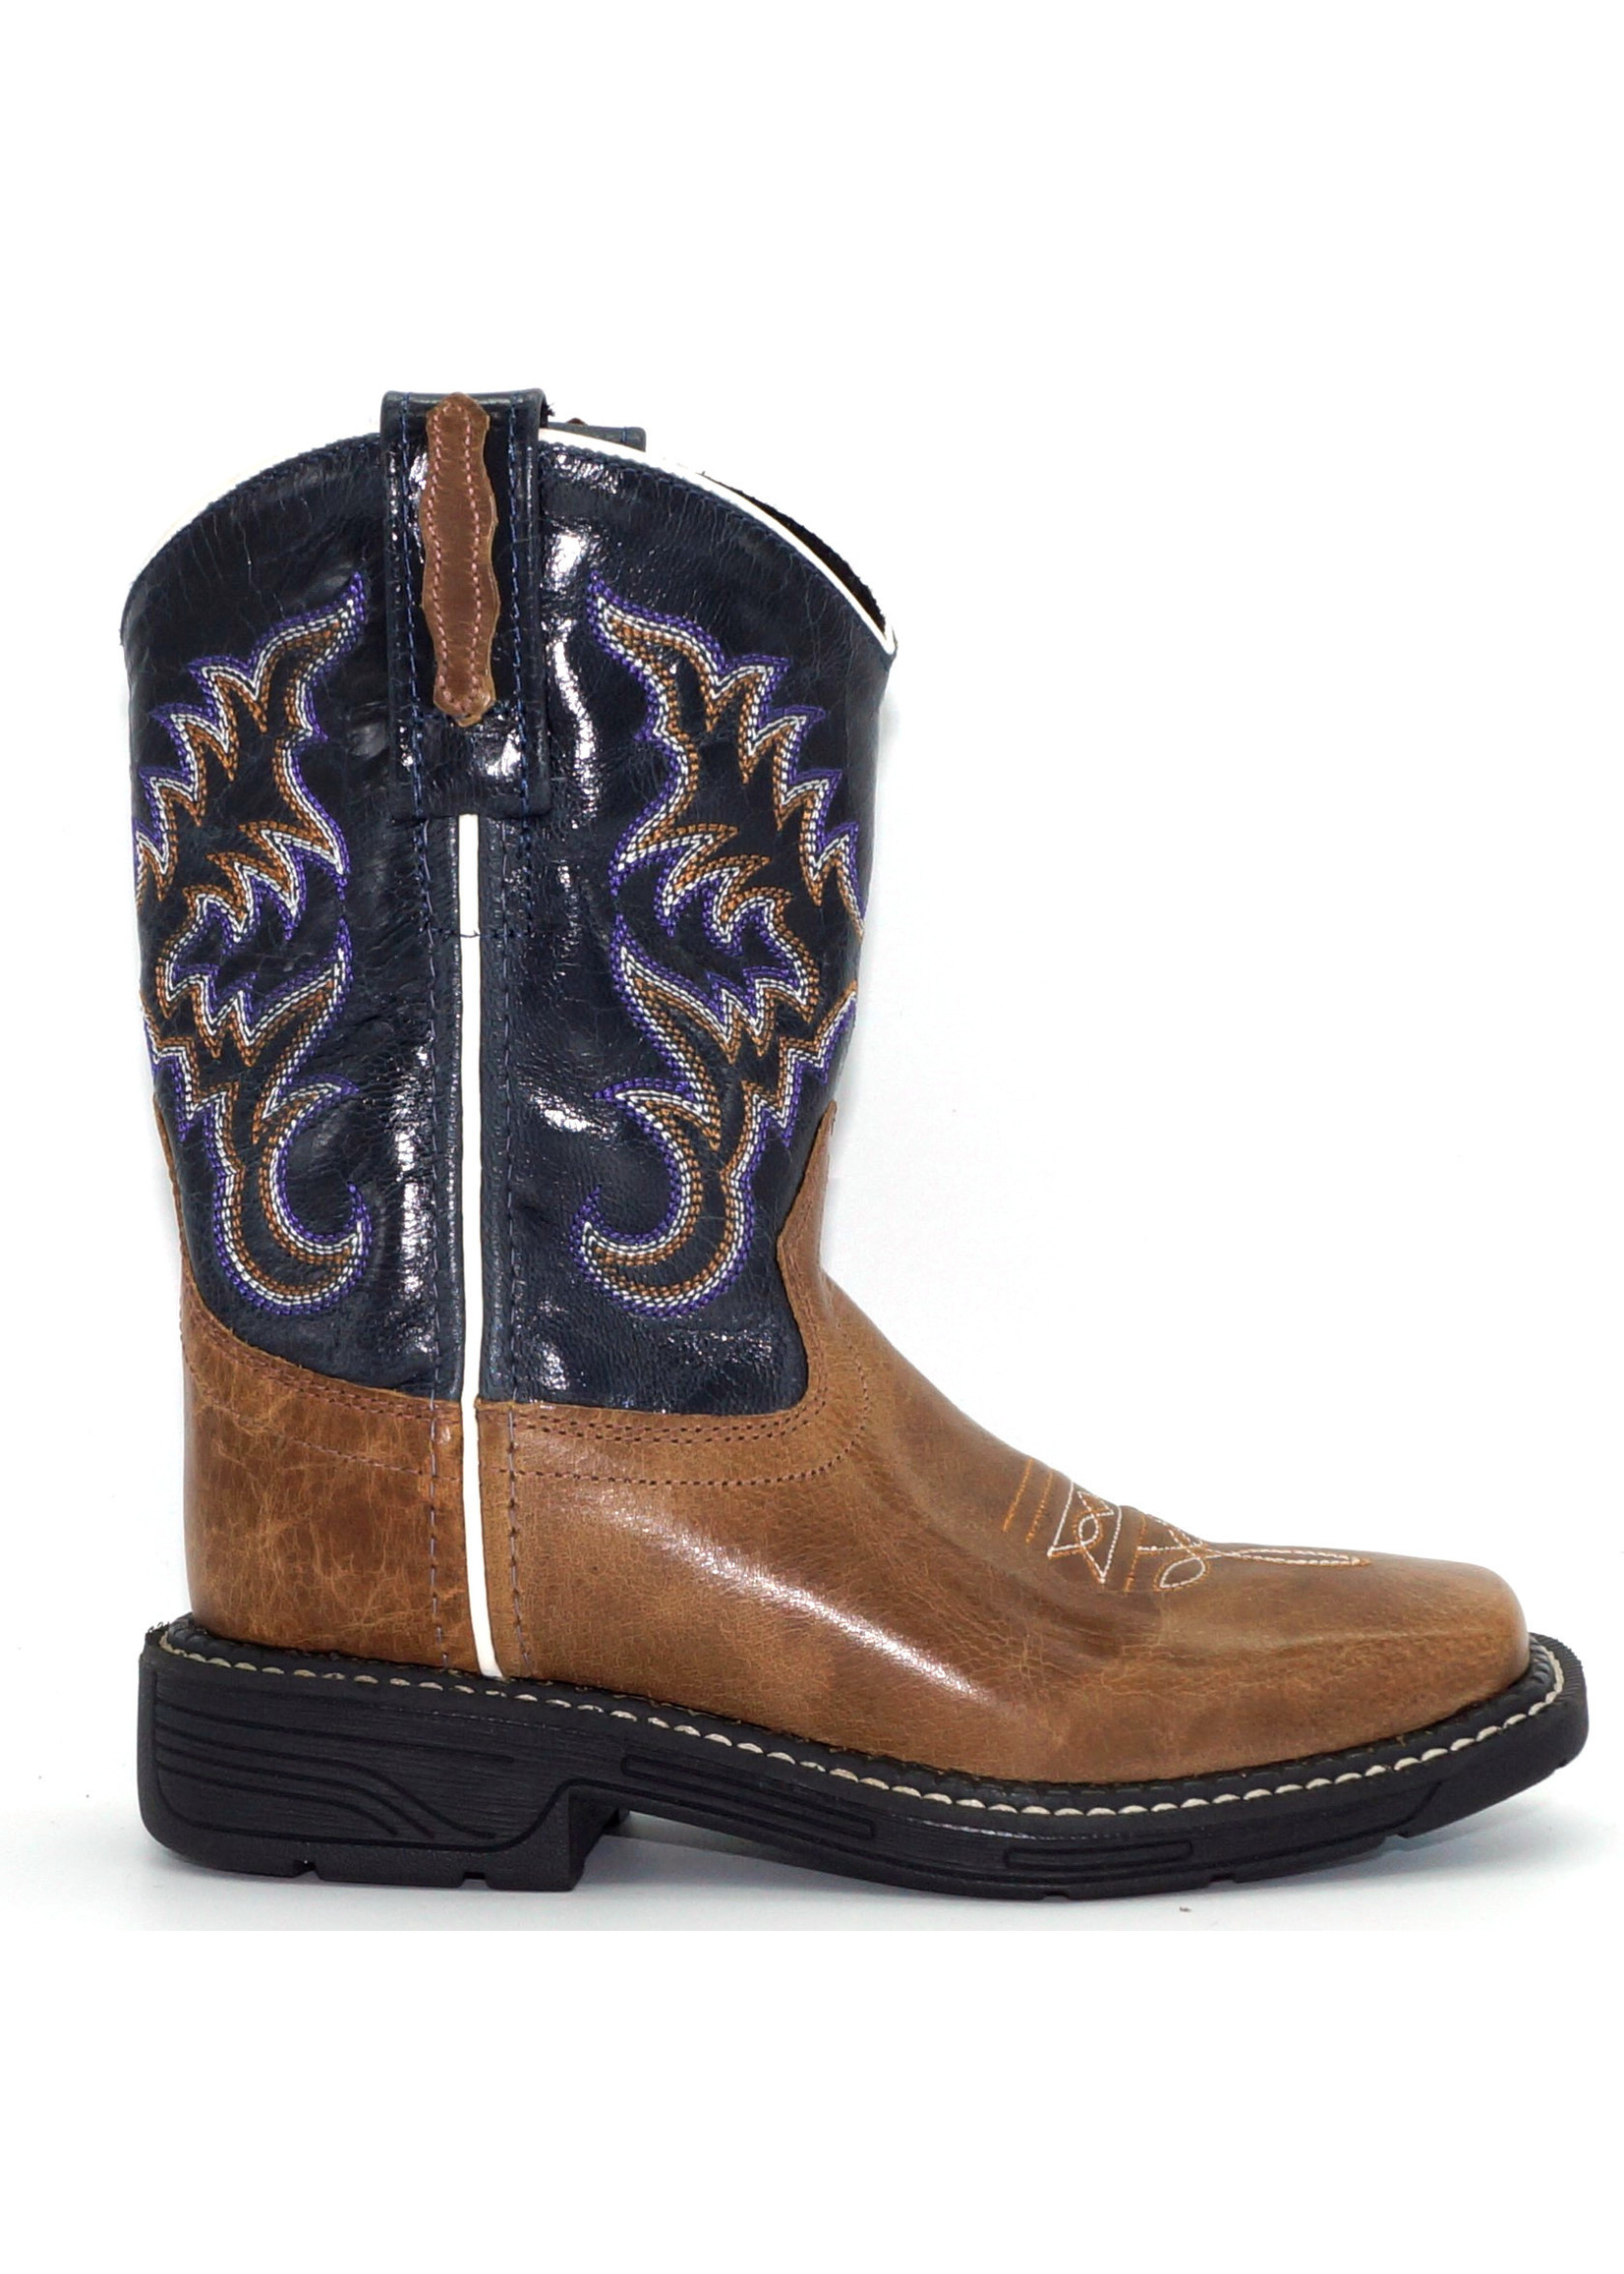 Old West Children's All over Leather Western Boot WB1002